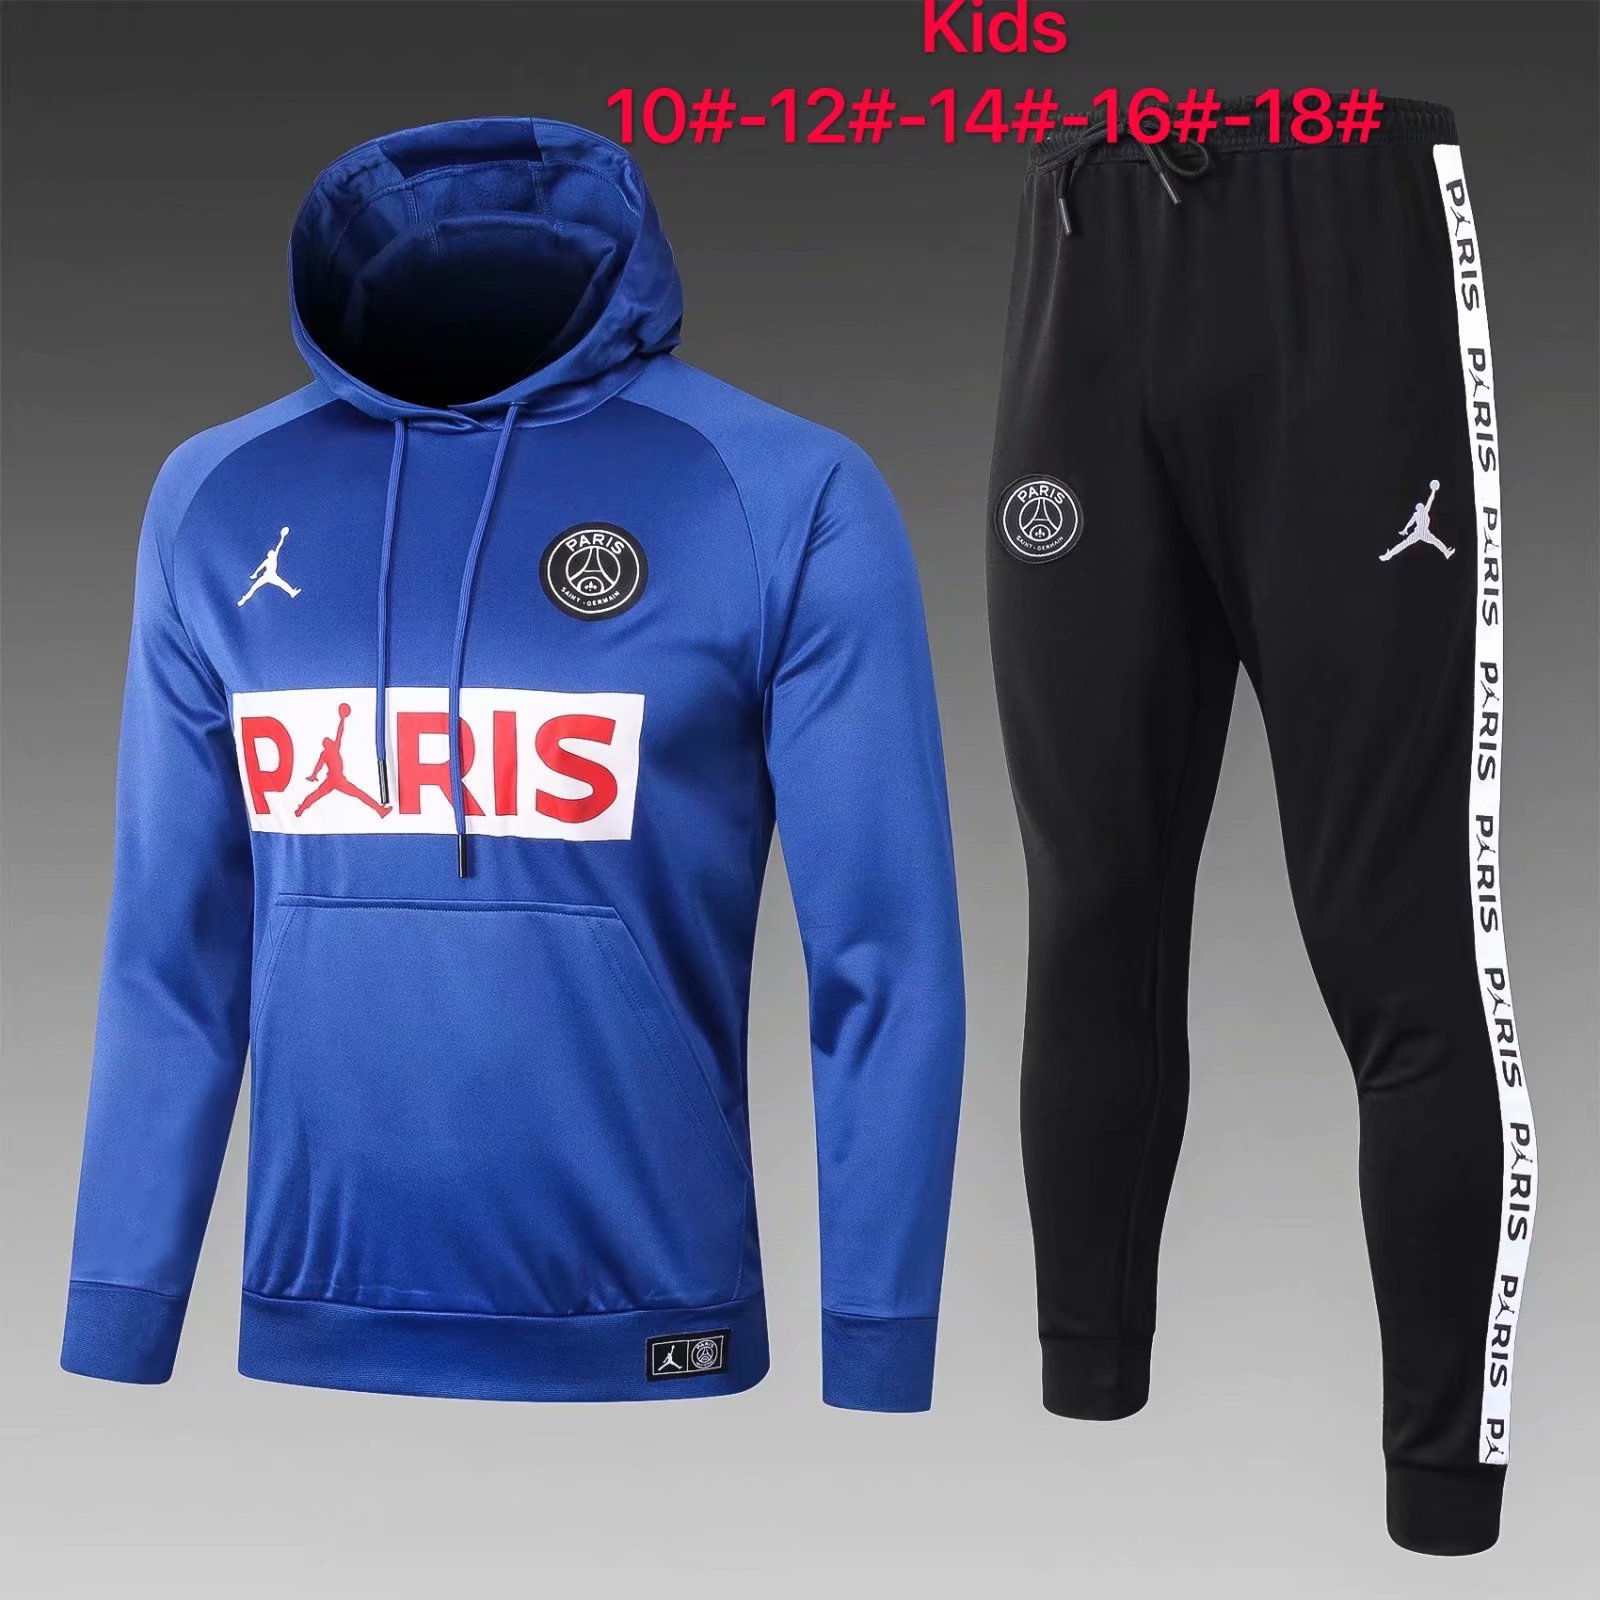 kids psg jordan hoodie sweatshirt pants suit blue 2020 21